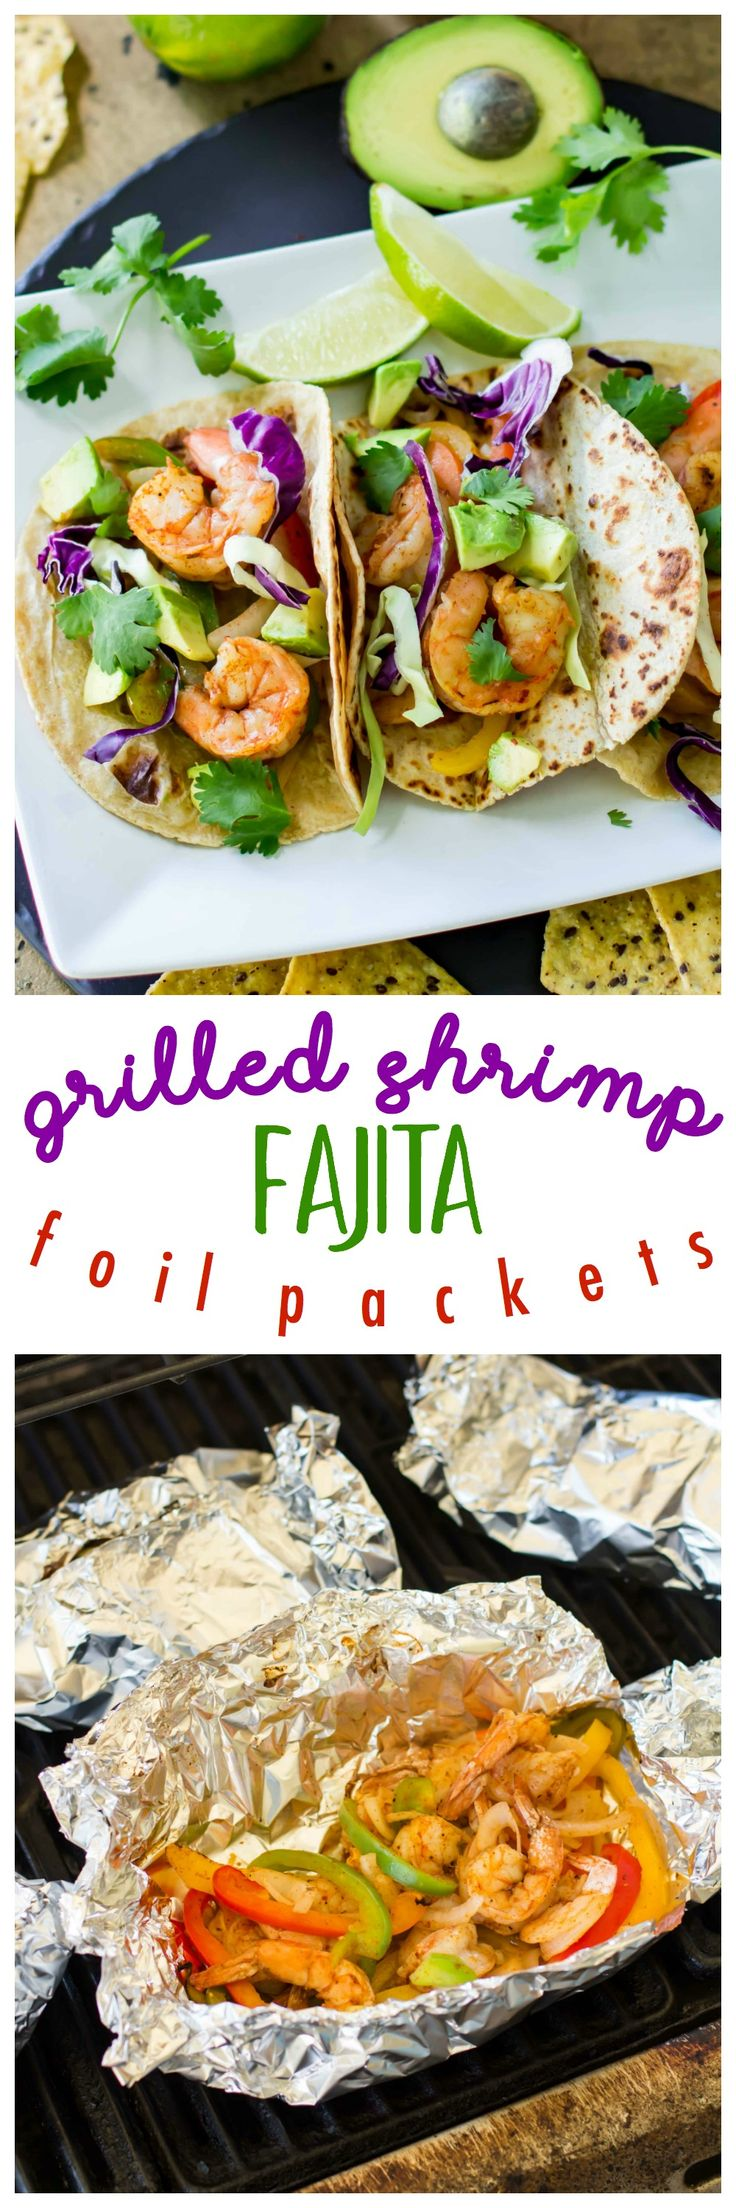 Grilled Shrimp Fajita Foil Packets are so easy and delicious. Perfectly cooked in foil – juicy shrimp, tender bell peppers and onions can be wrapped into a warm tortilla for a super fast dinner, that's packed with incredible flavor! AD